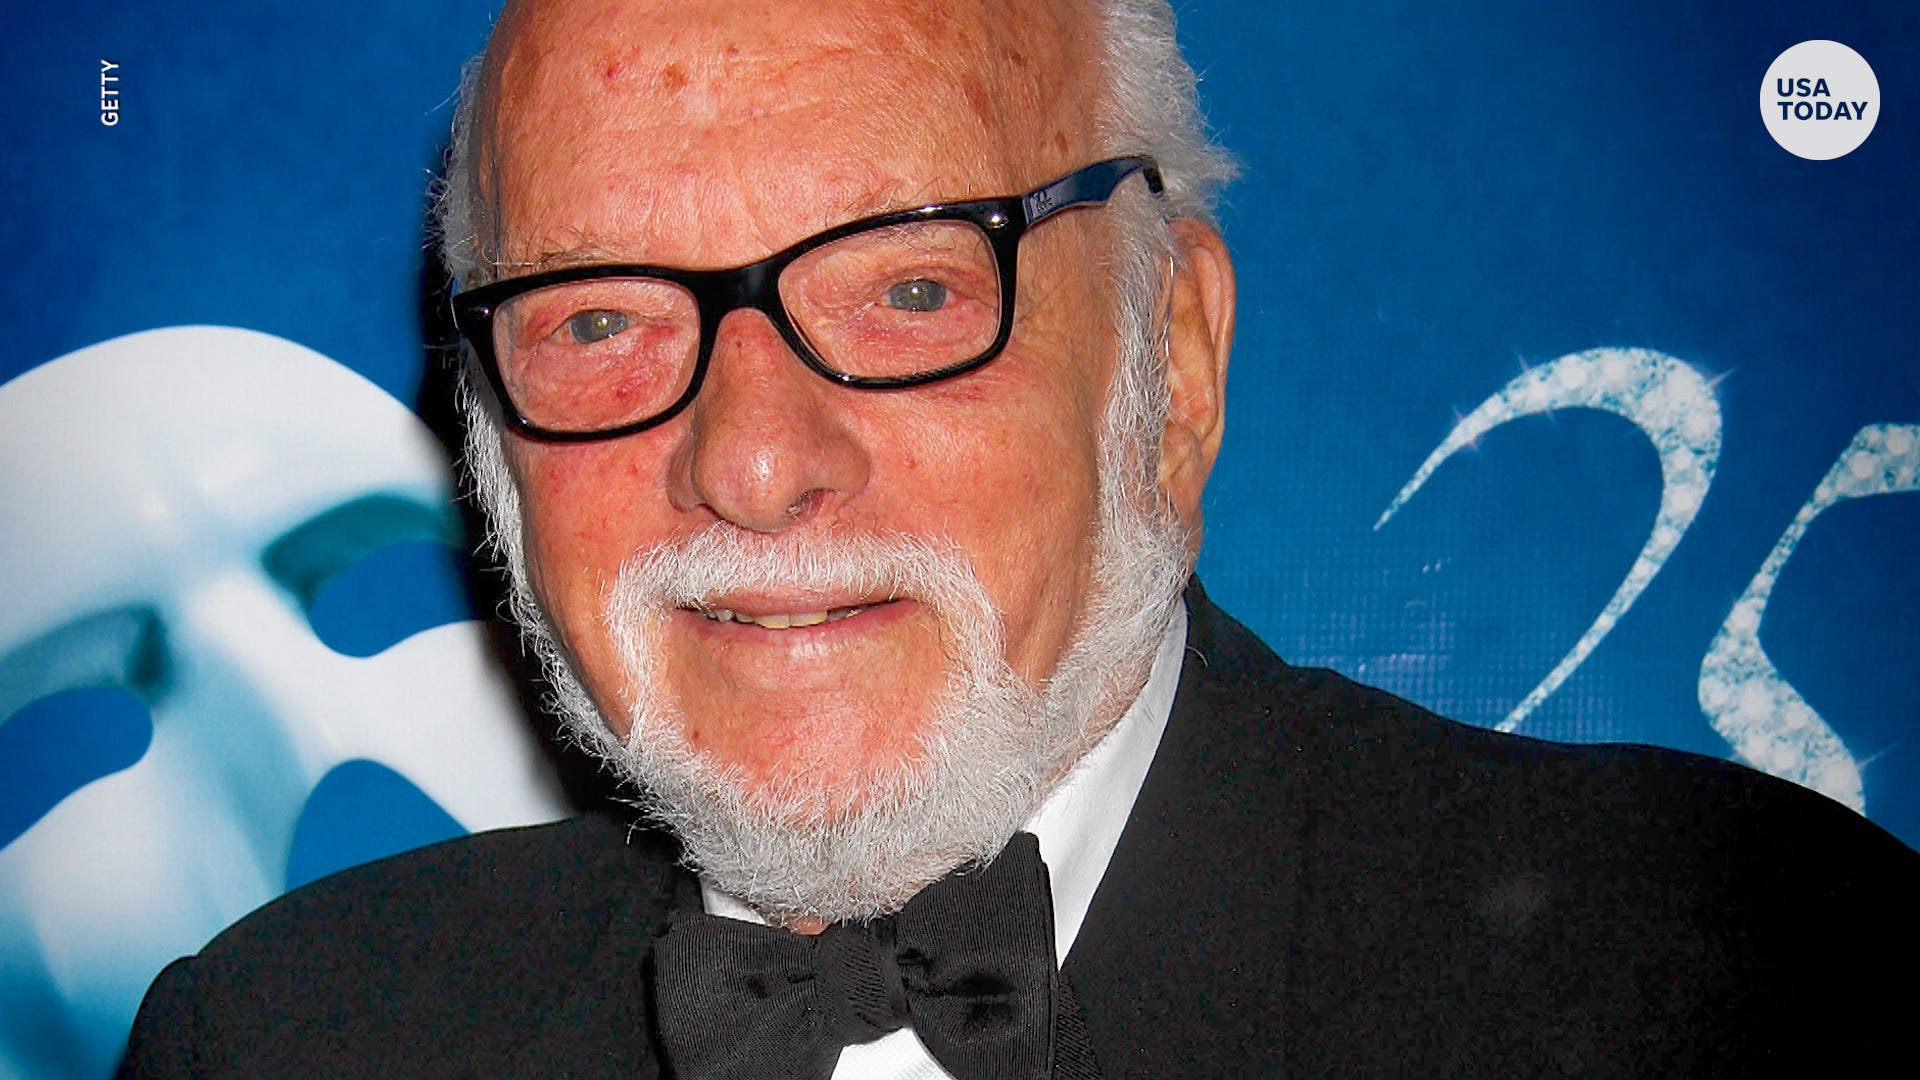 Broadway director and producer Hal Prince has died at 91